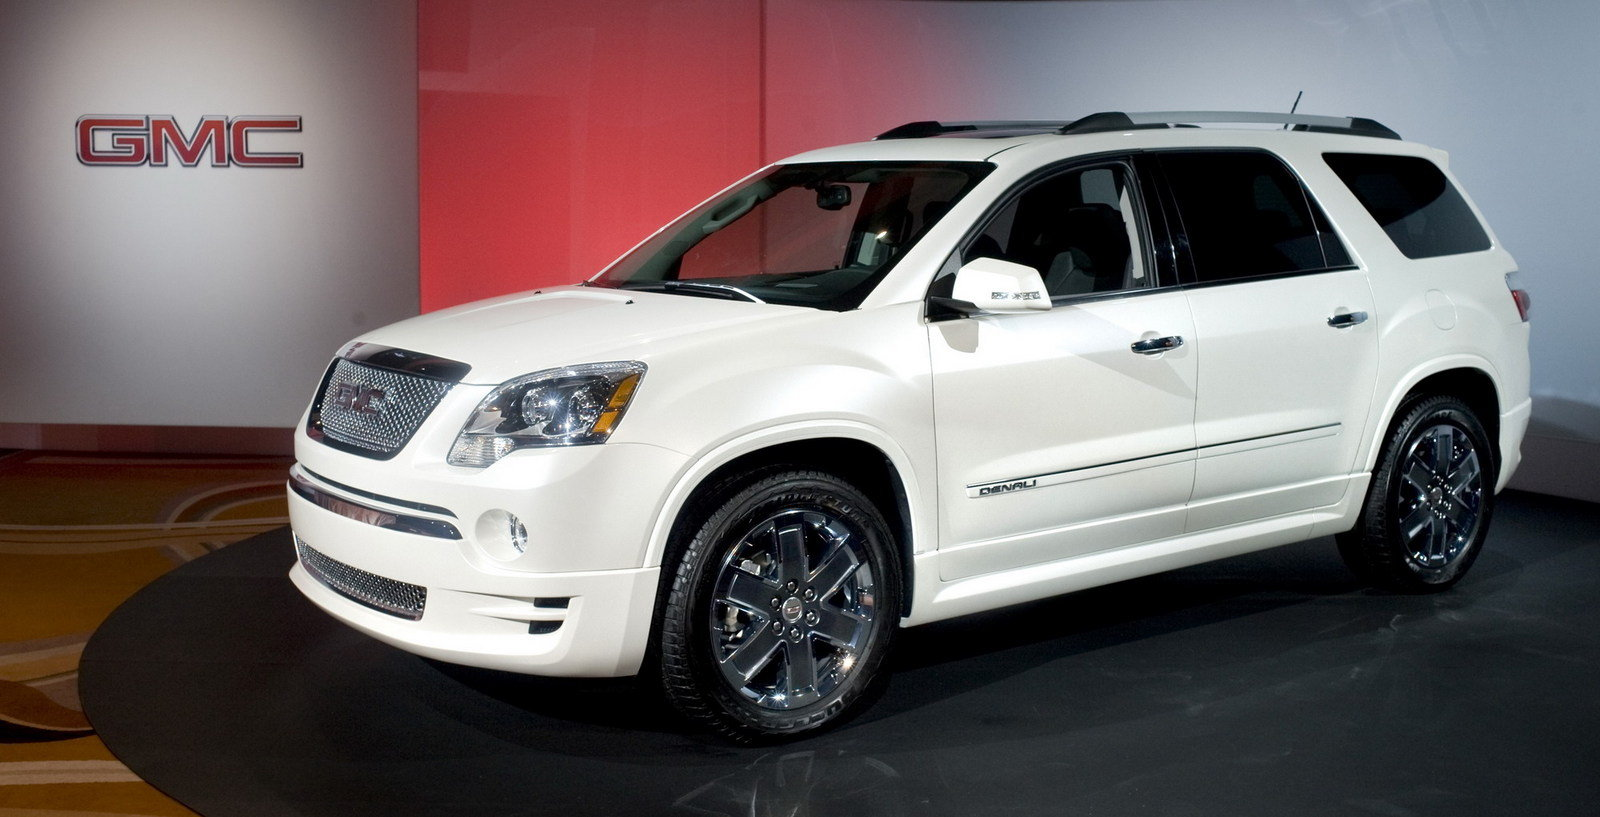 2011 gmc acadia denali picture 339369 car review top speed. Black Bedroom Furniture Sets. Home Design Ideas